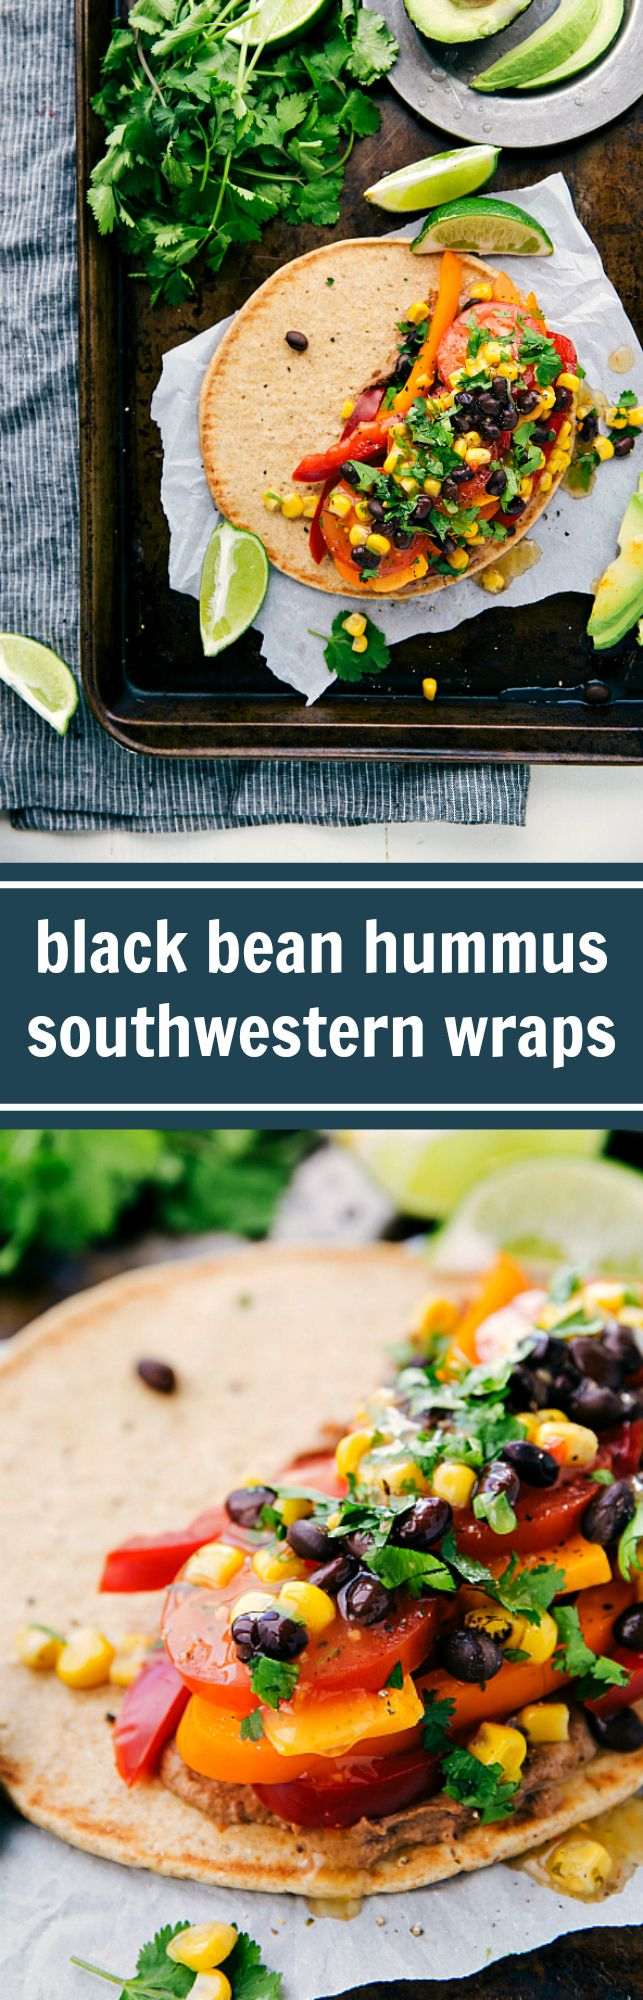 Southwestern Veggie Hummus Wraps NEW RECIPE!! Simple 10-minute Southwestern Hummus and Veggie Wraps. No meat and I promise you won't miss it! #HummusMadeEasy #ad